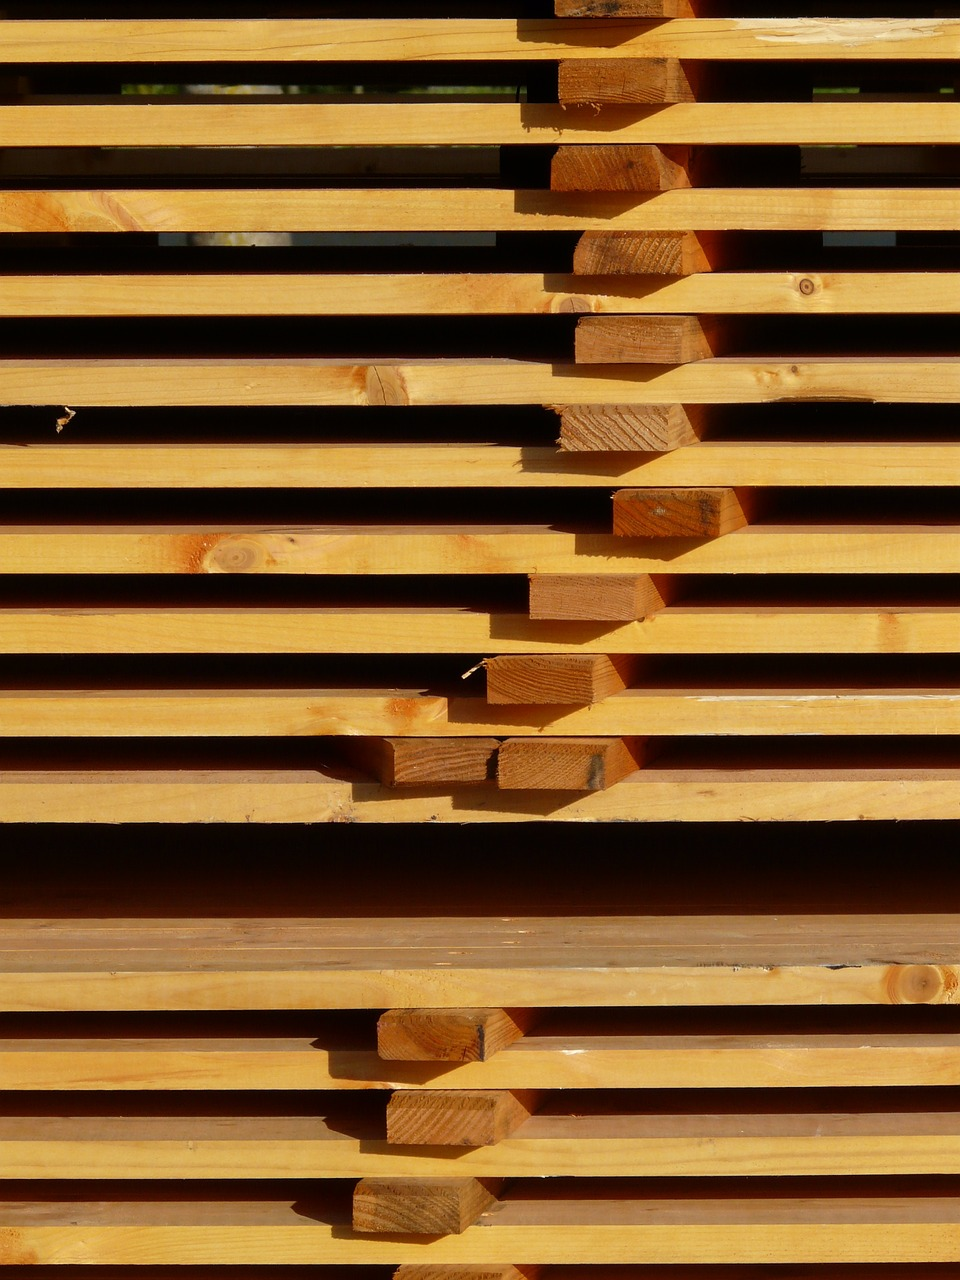 How to stack lumber for woodworking